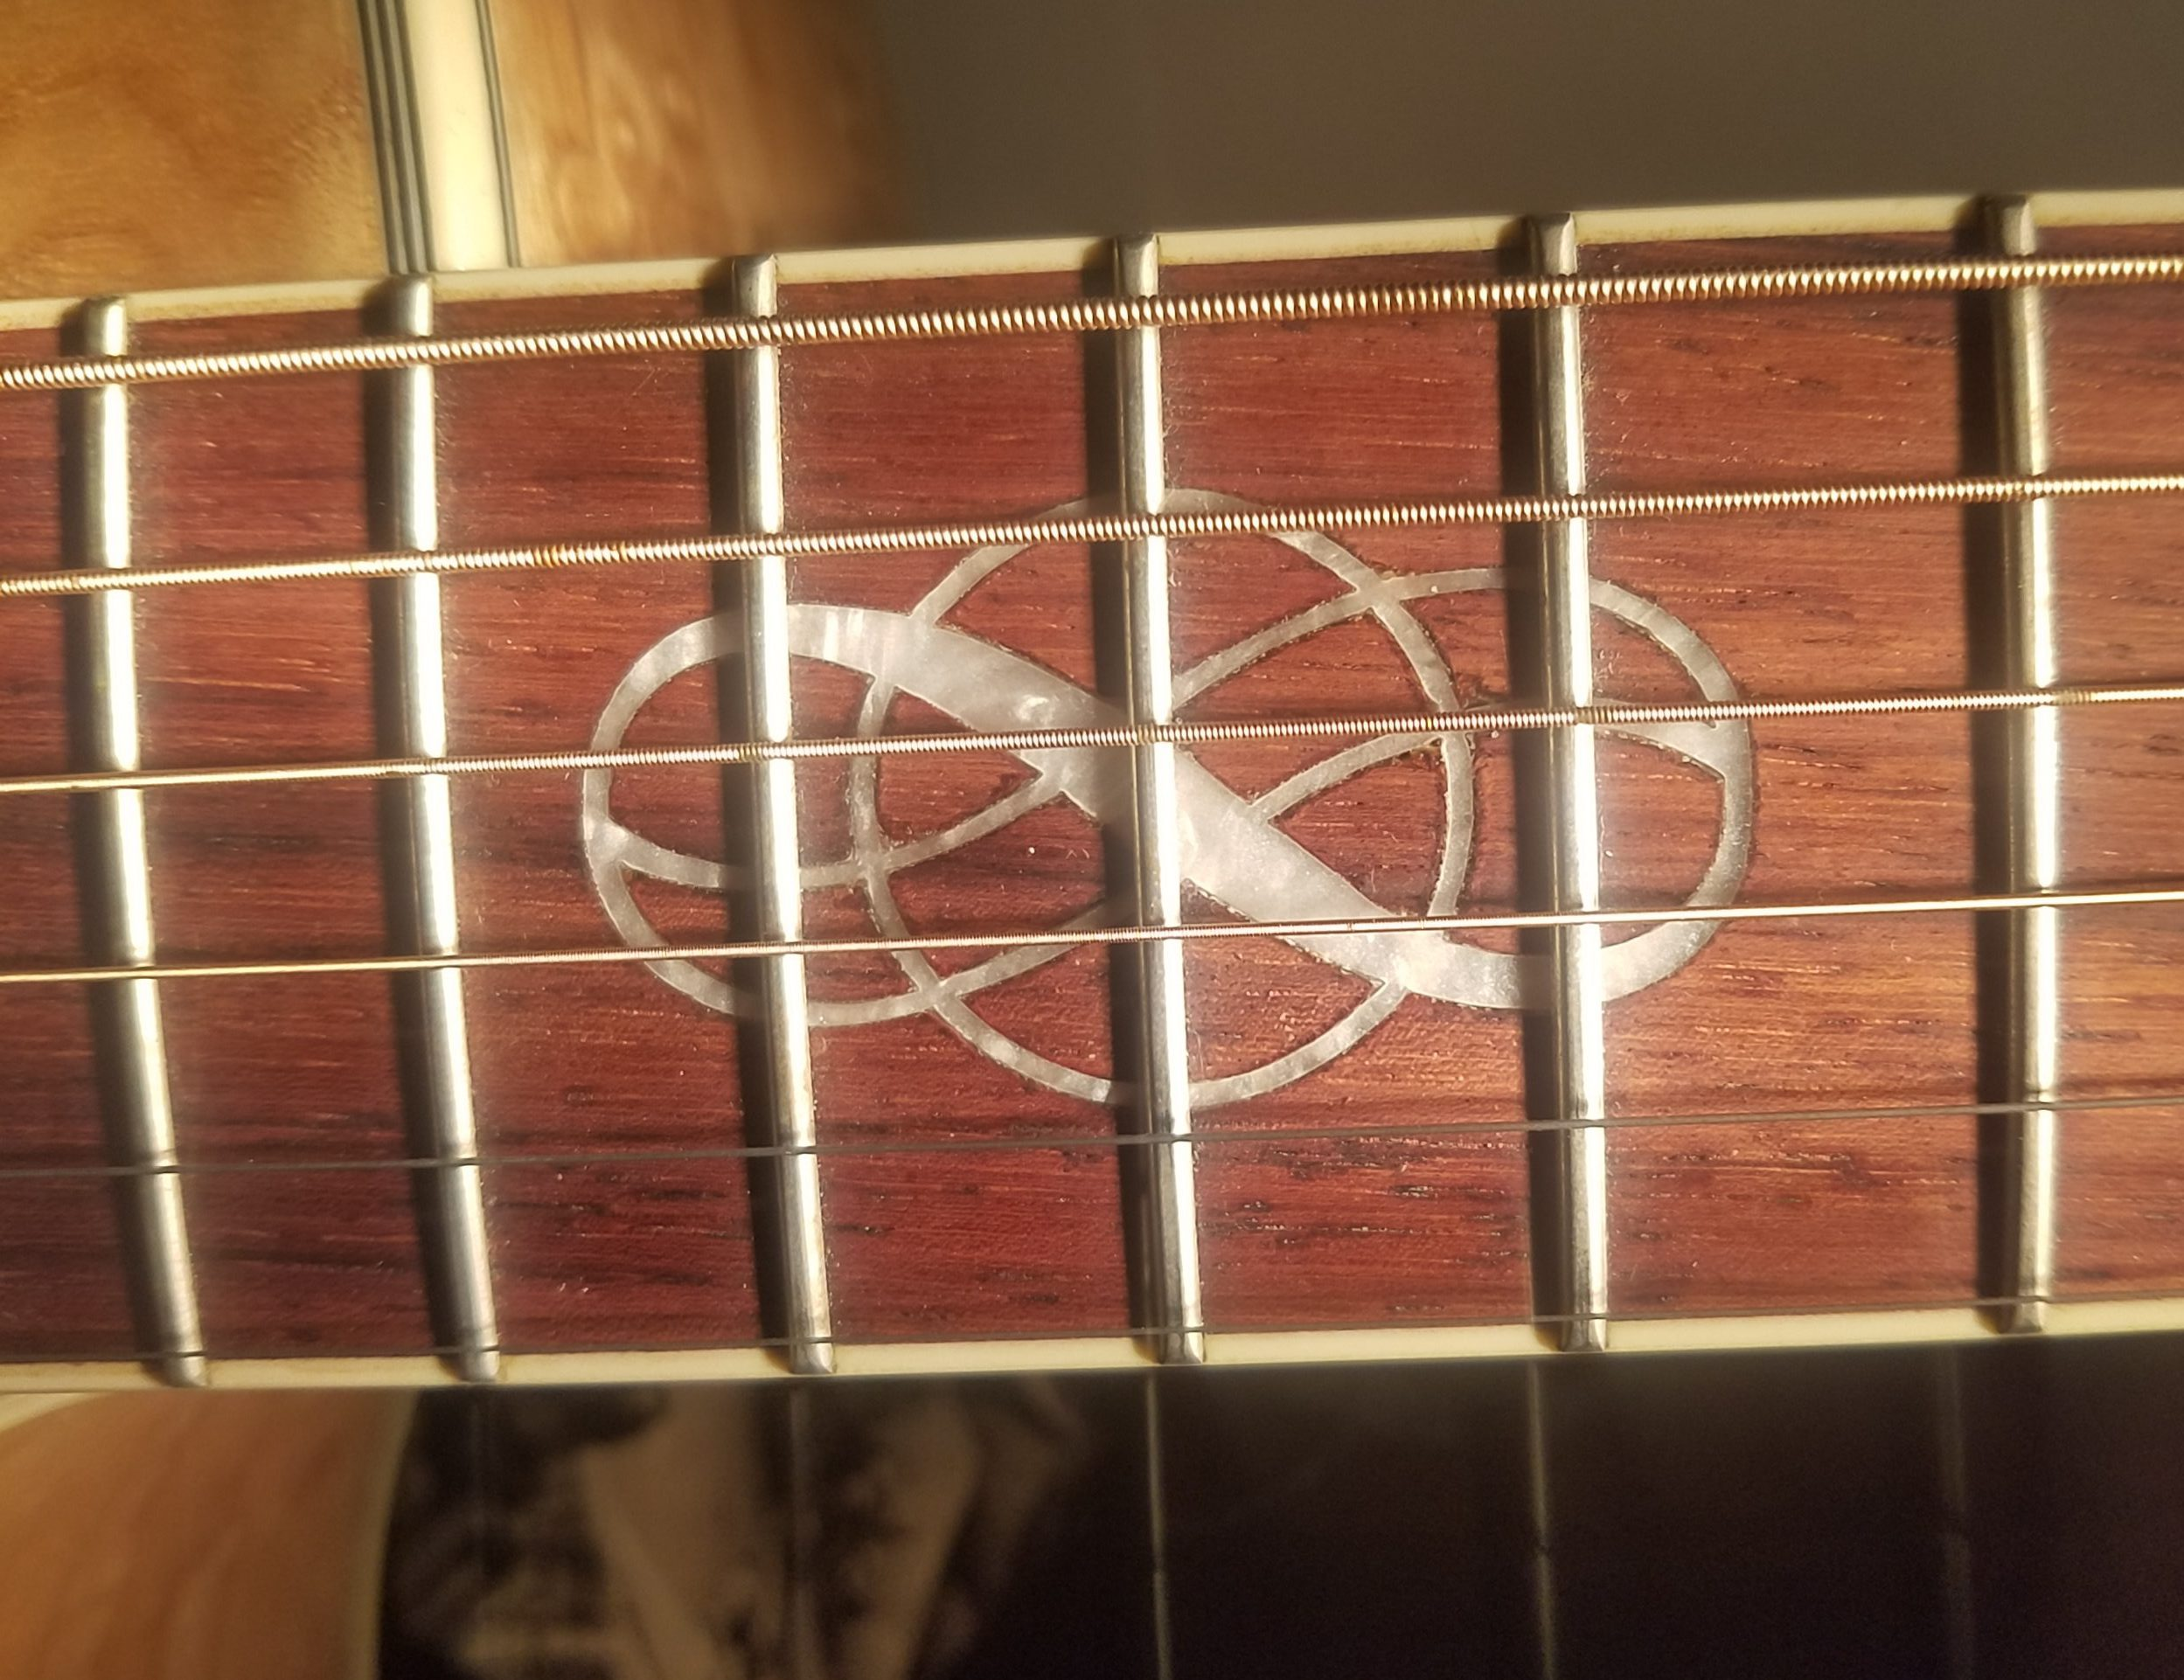 Ibanez acoustic guitar Inlay